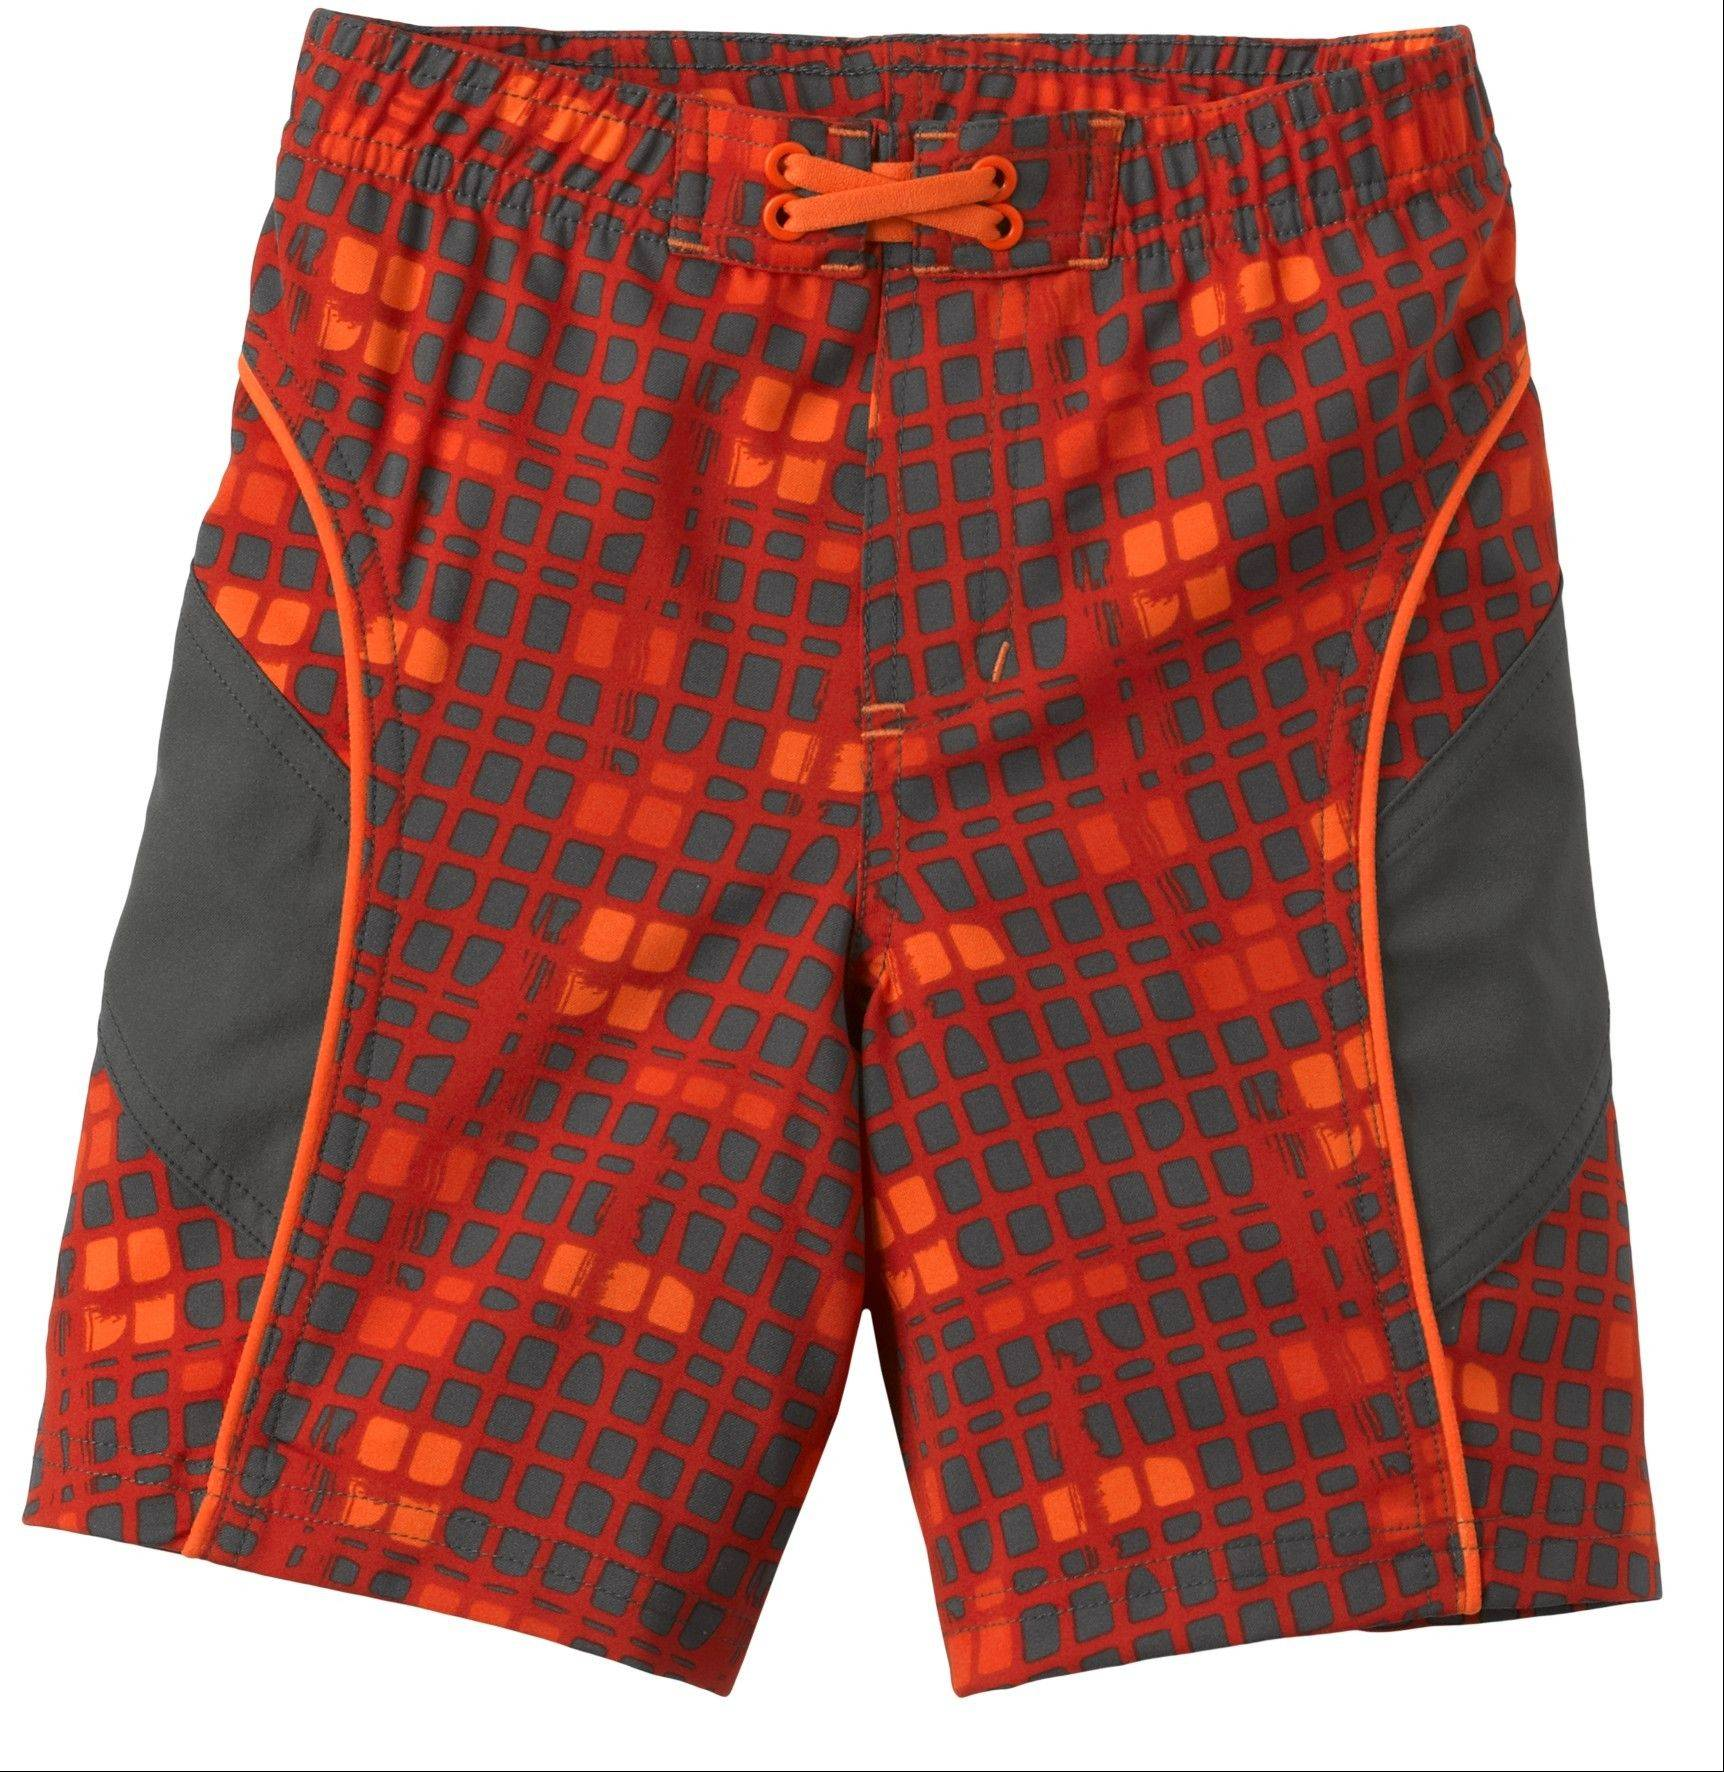 REI Sea Squirt Board Shorts for toddler boys, $13.19, REI stores and rei.com. These vibrant swim trunks are made of quick-drying polyester and provide UPF 50+ sun protection.